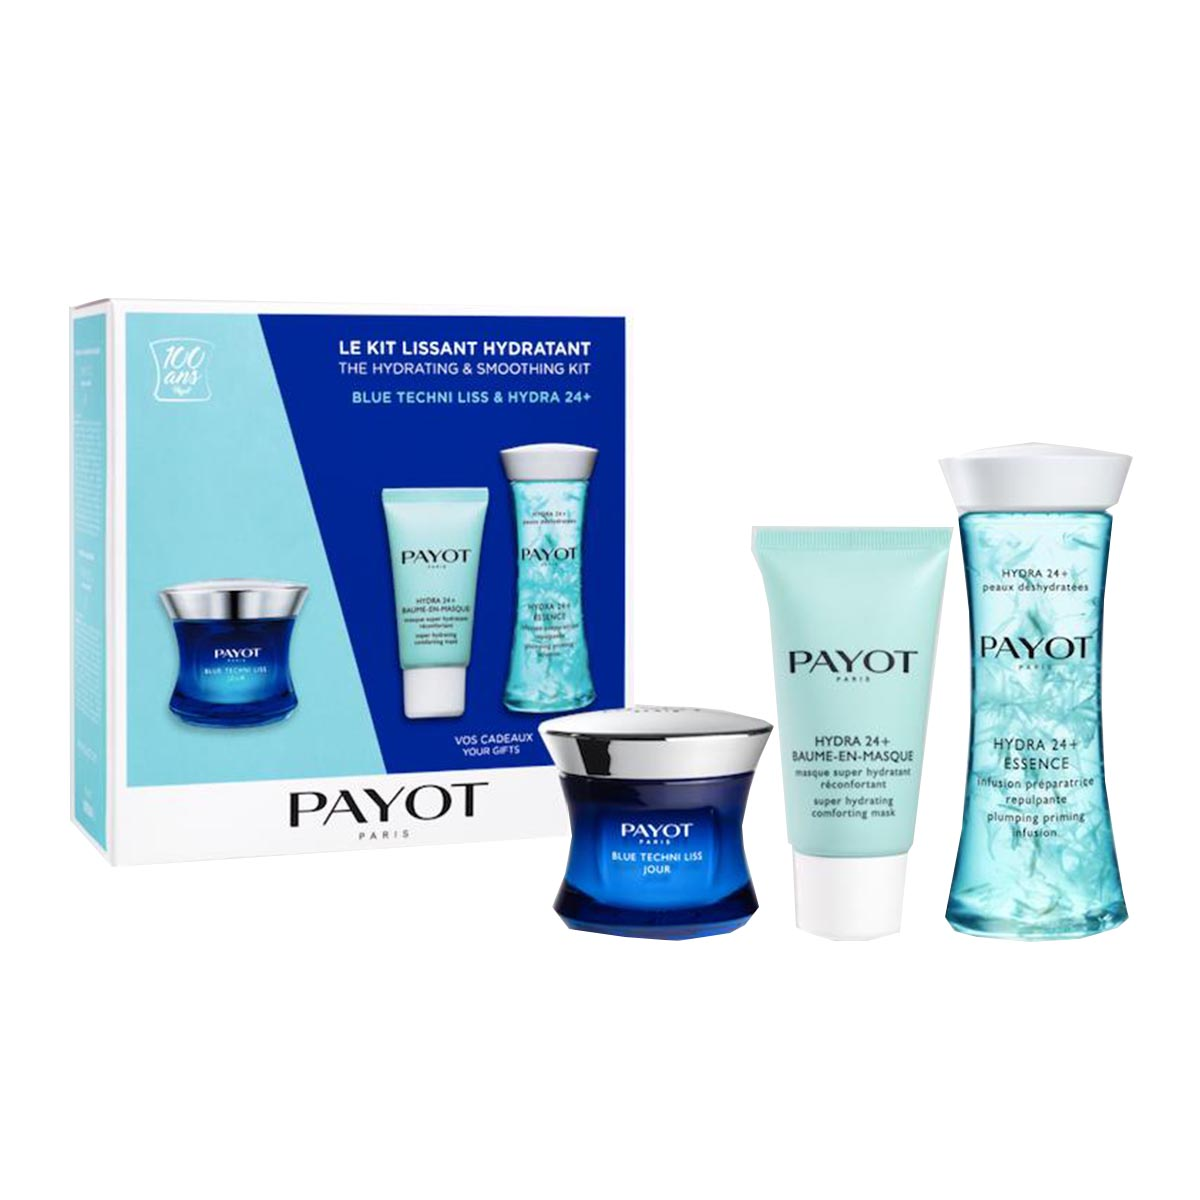 Payot blue tech lissant hydratant essence 24h day cream mask